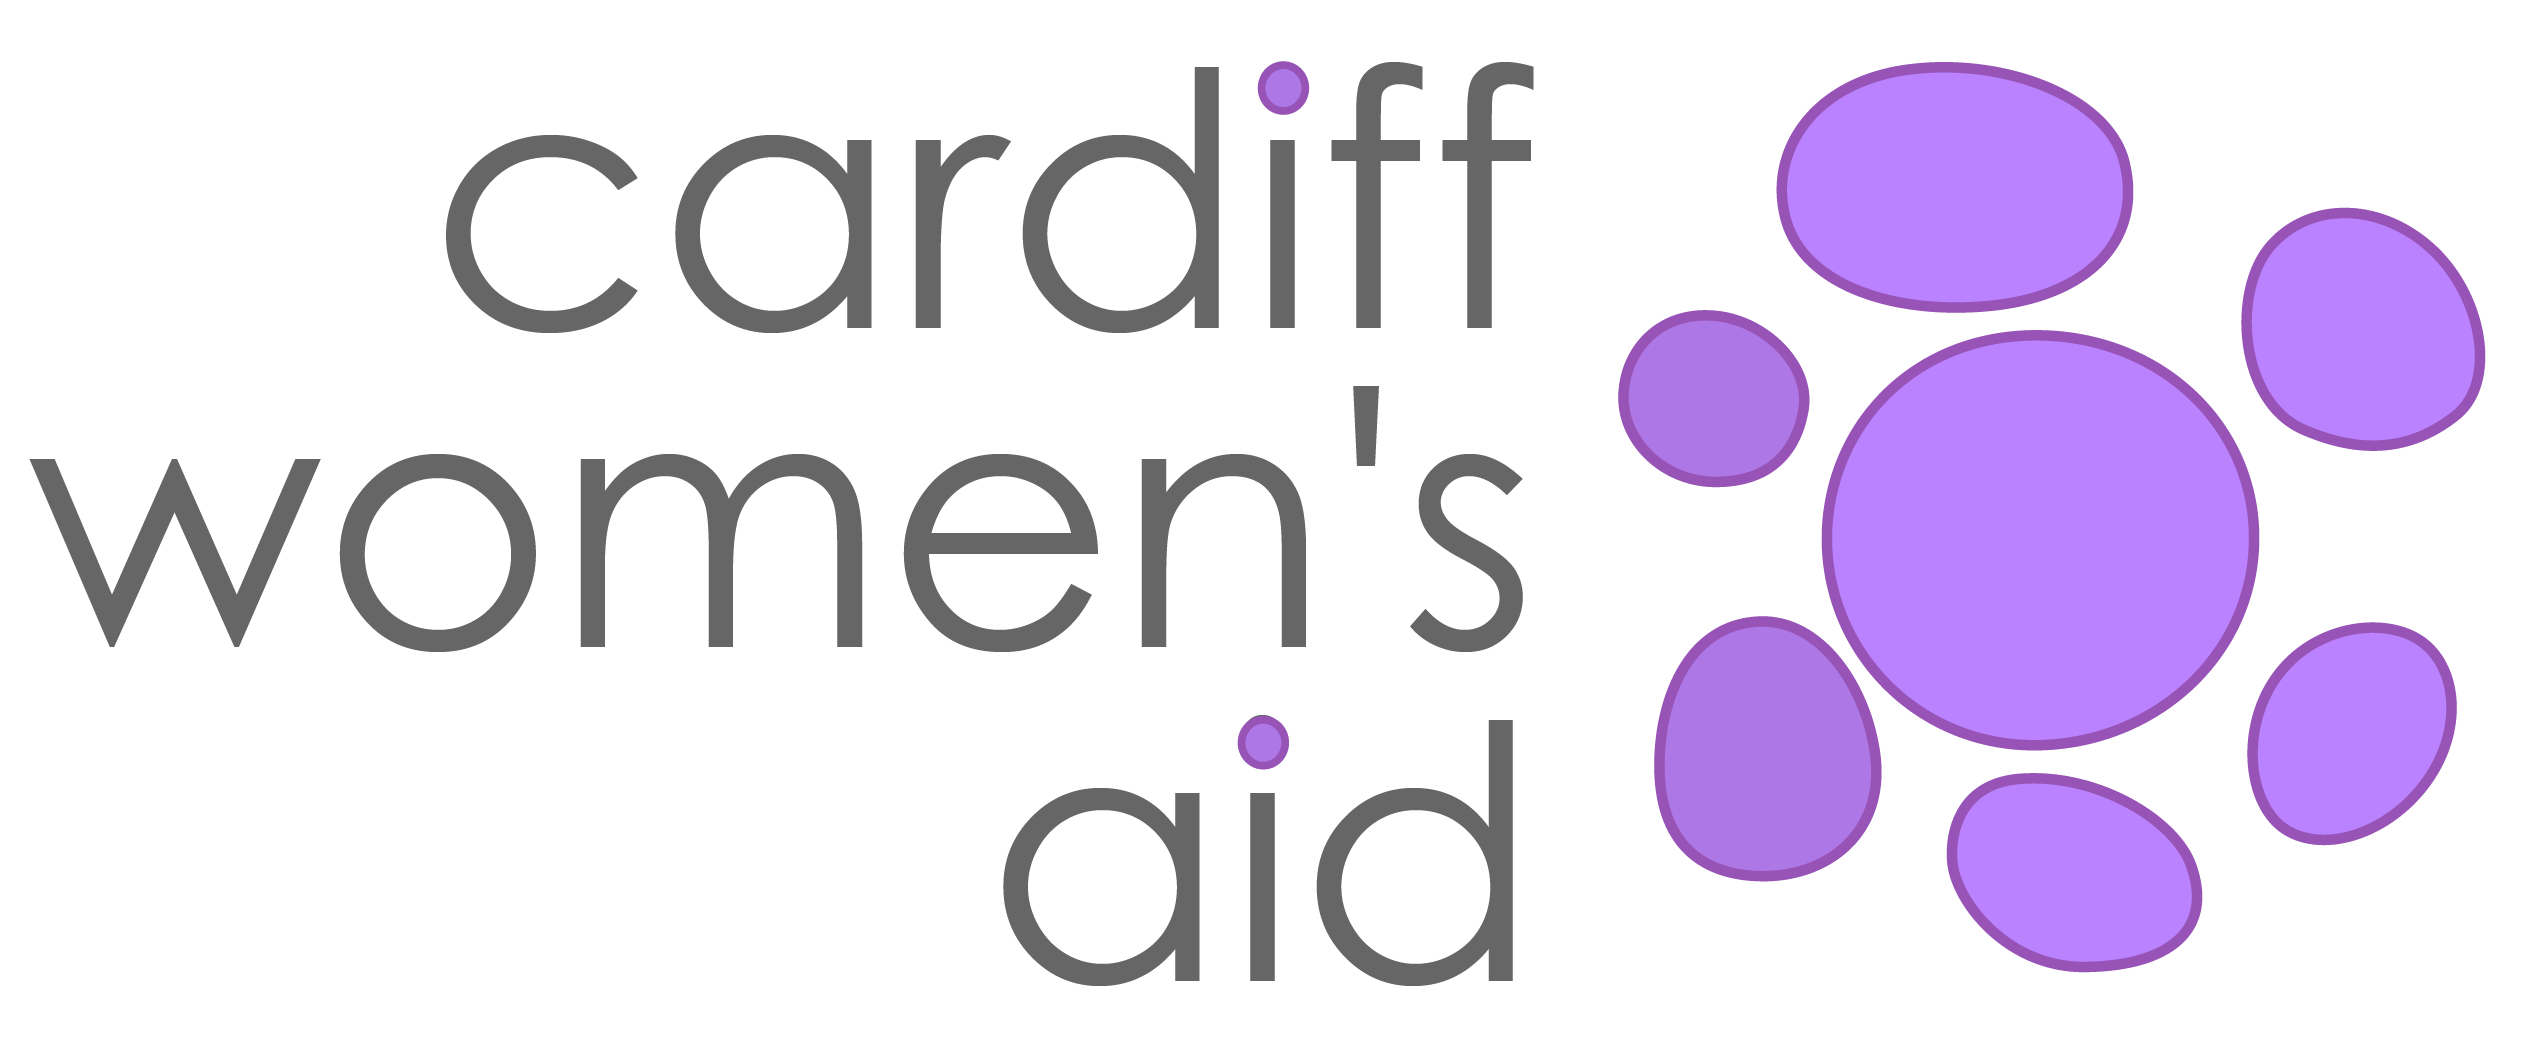 Cardiff Women\'s Aid.png